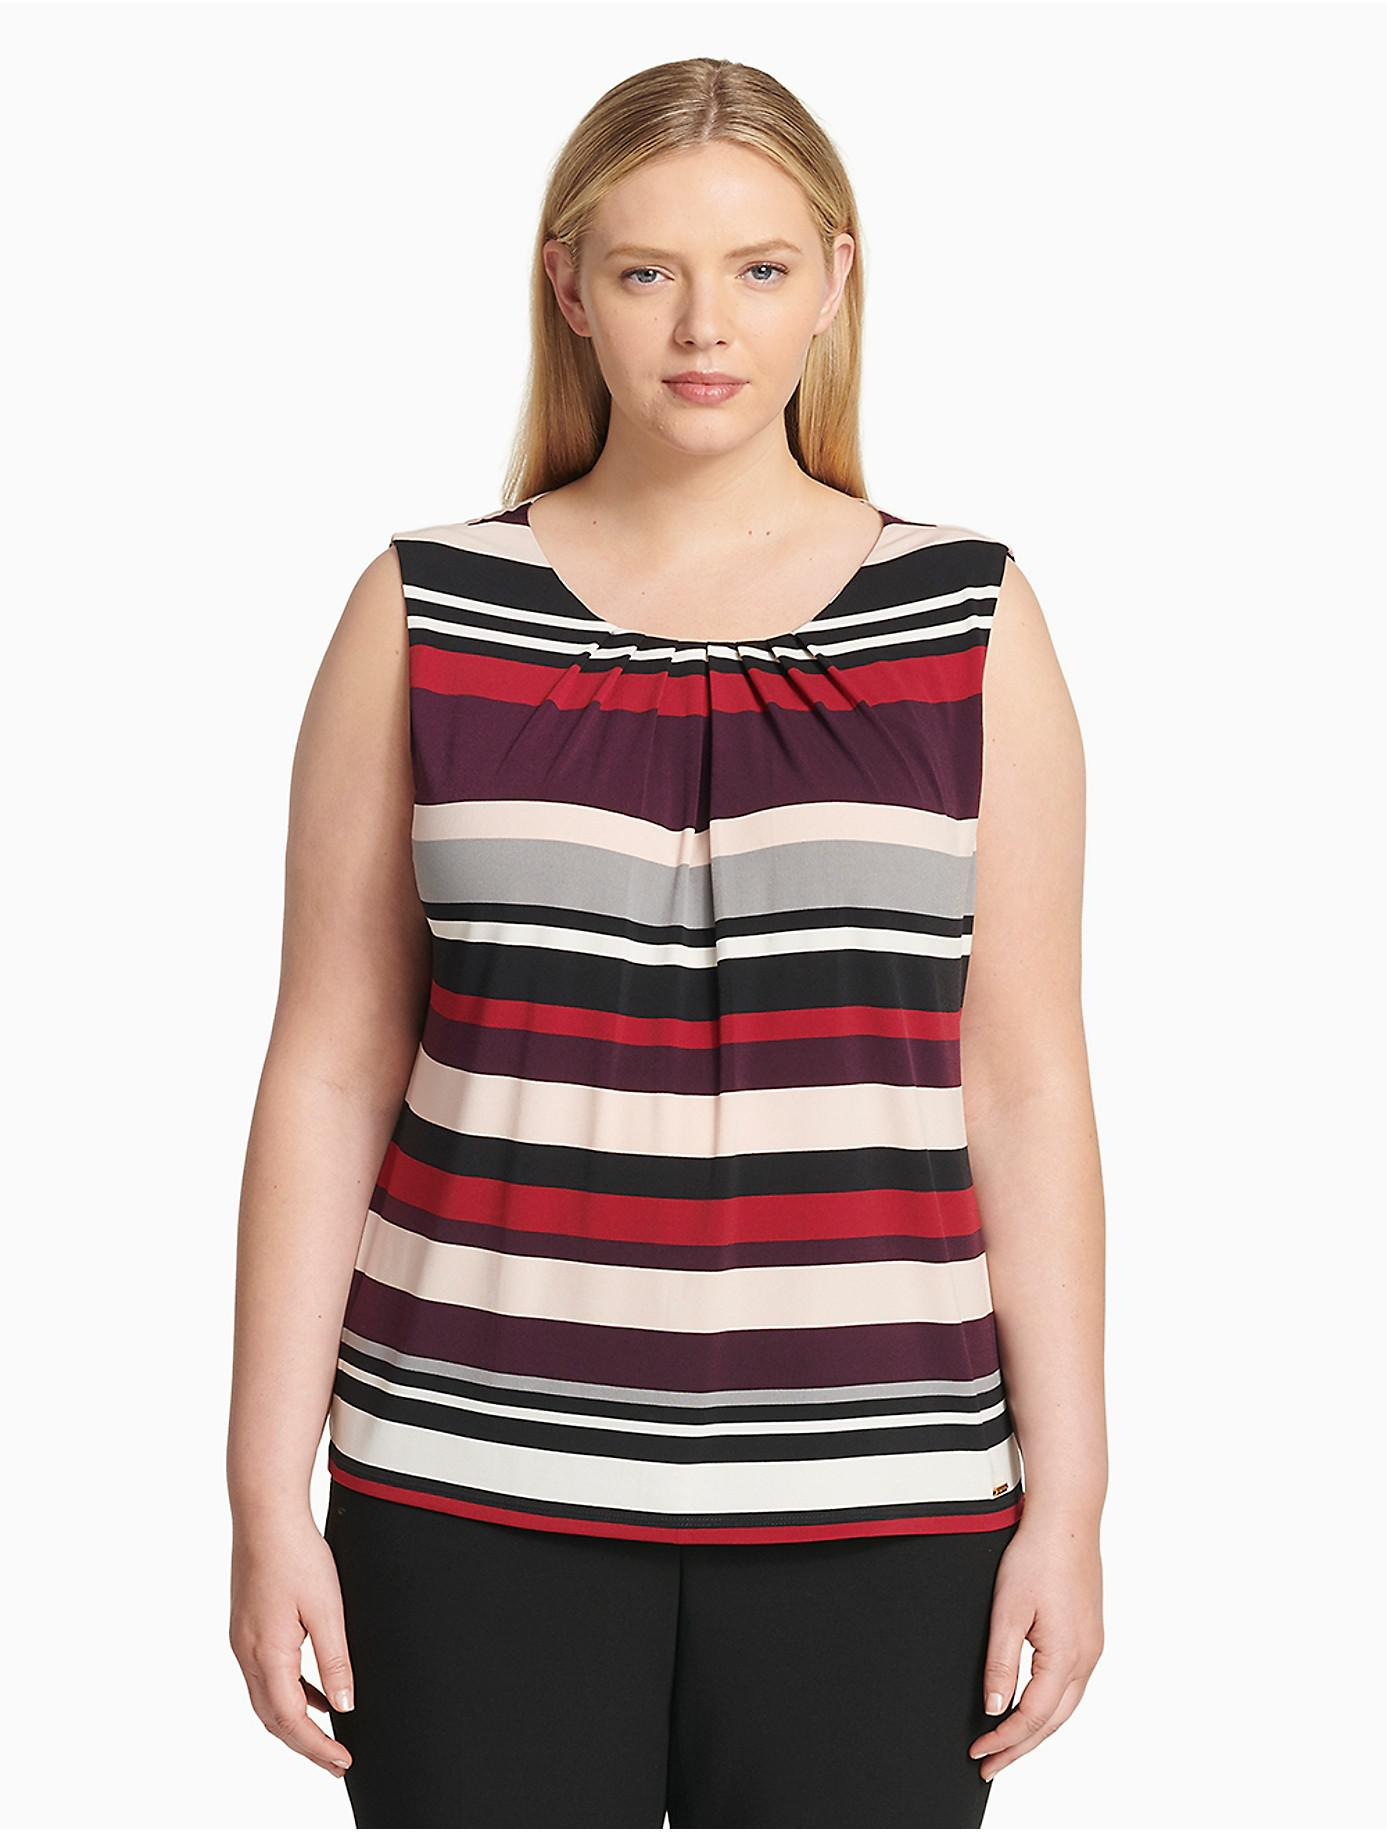 05d424e18c1 Lyst - Calvin Klein Plus Size Striped Pleat Neck Sleeveless Top in Red